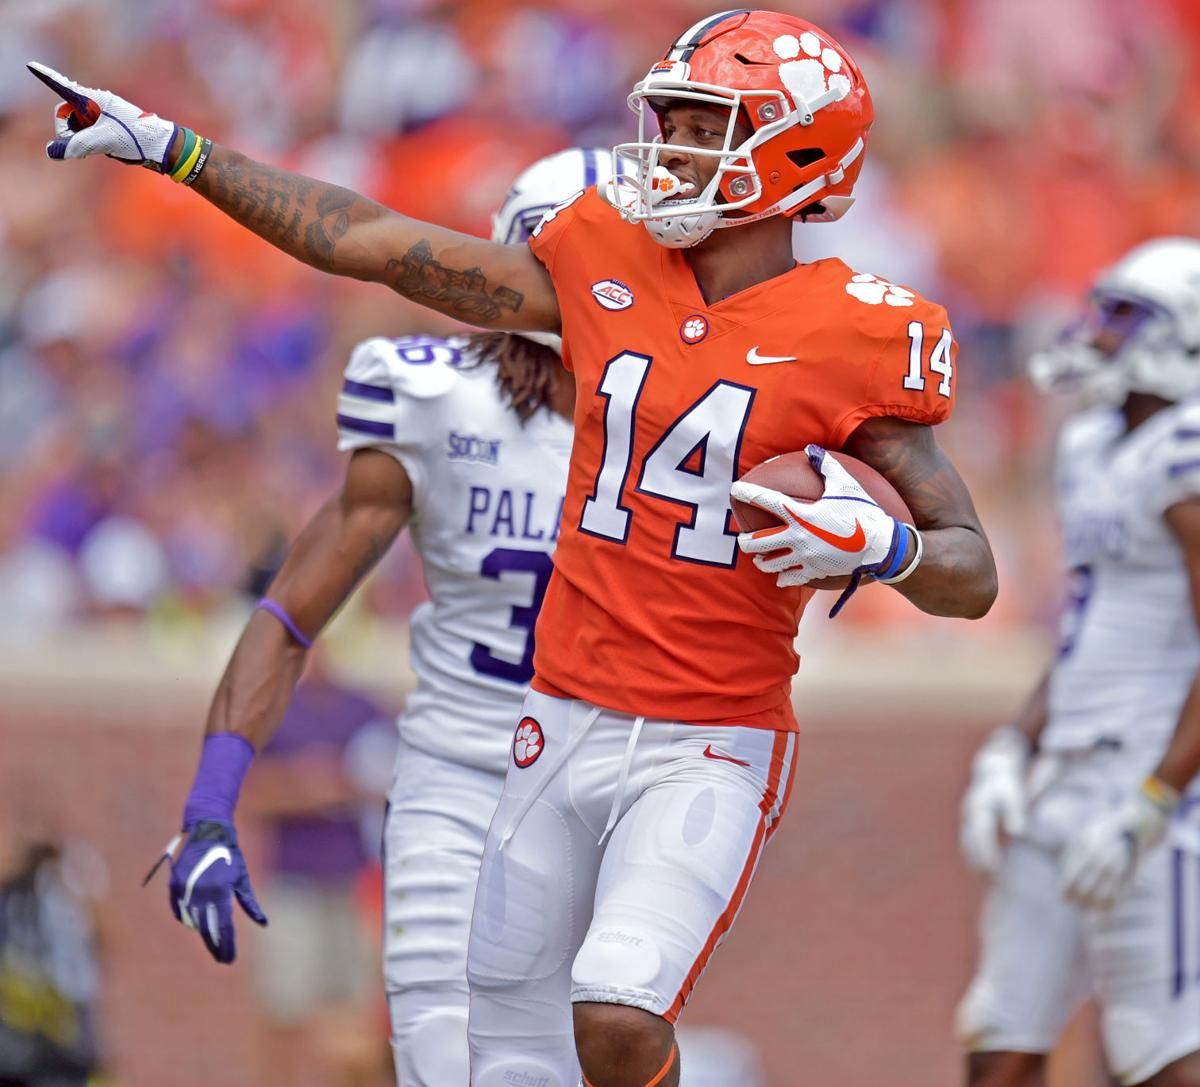 Next Man Up: The Top Candidates To Replace Clemson WR